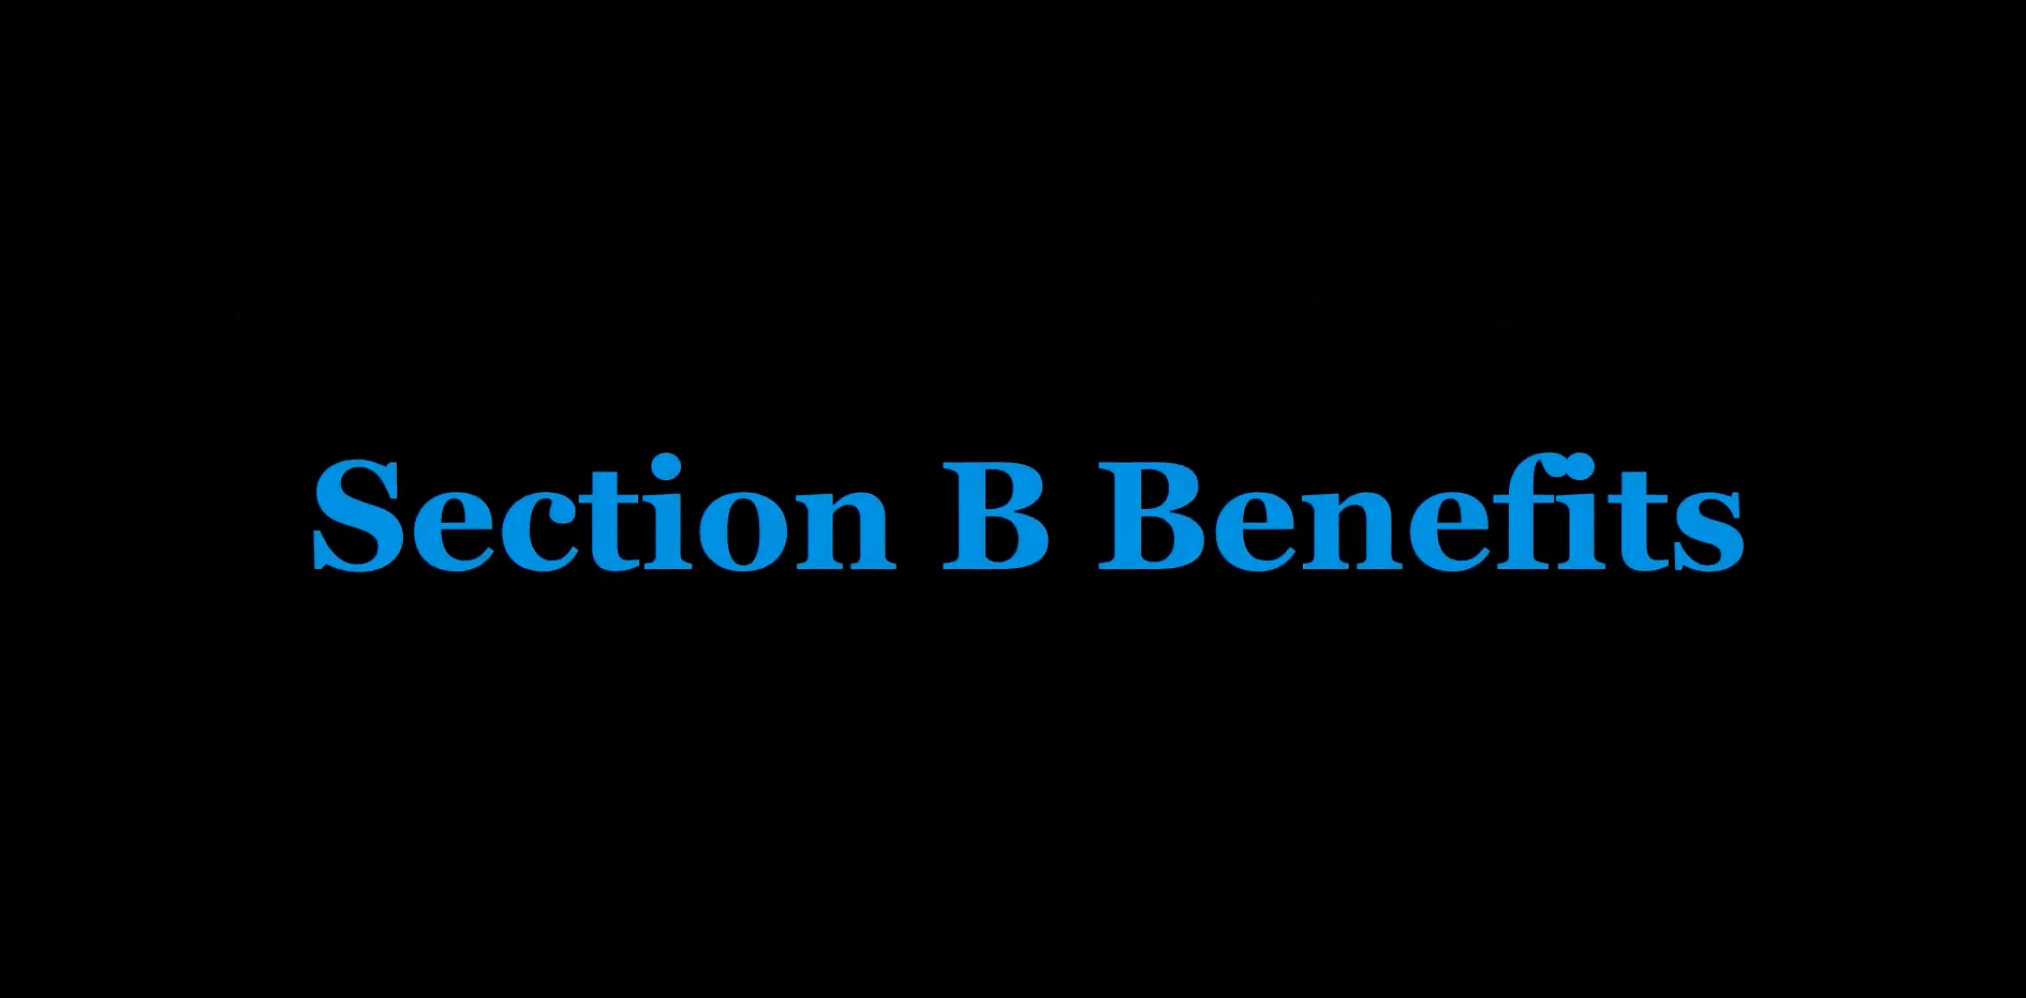 Explaining Section B Benefits